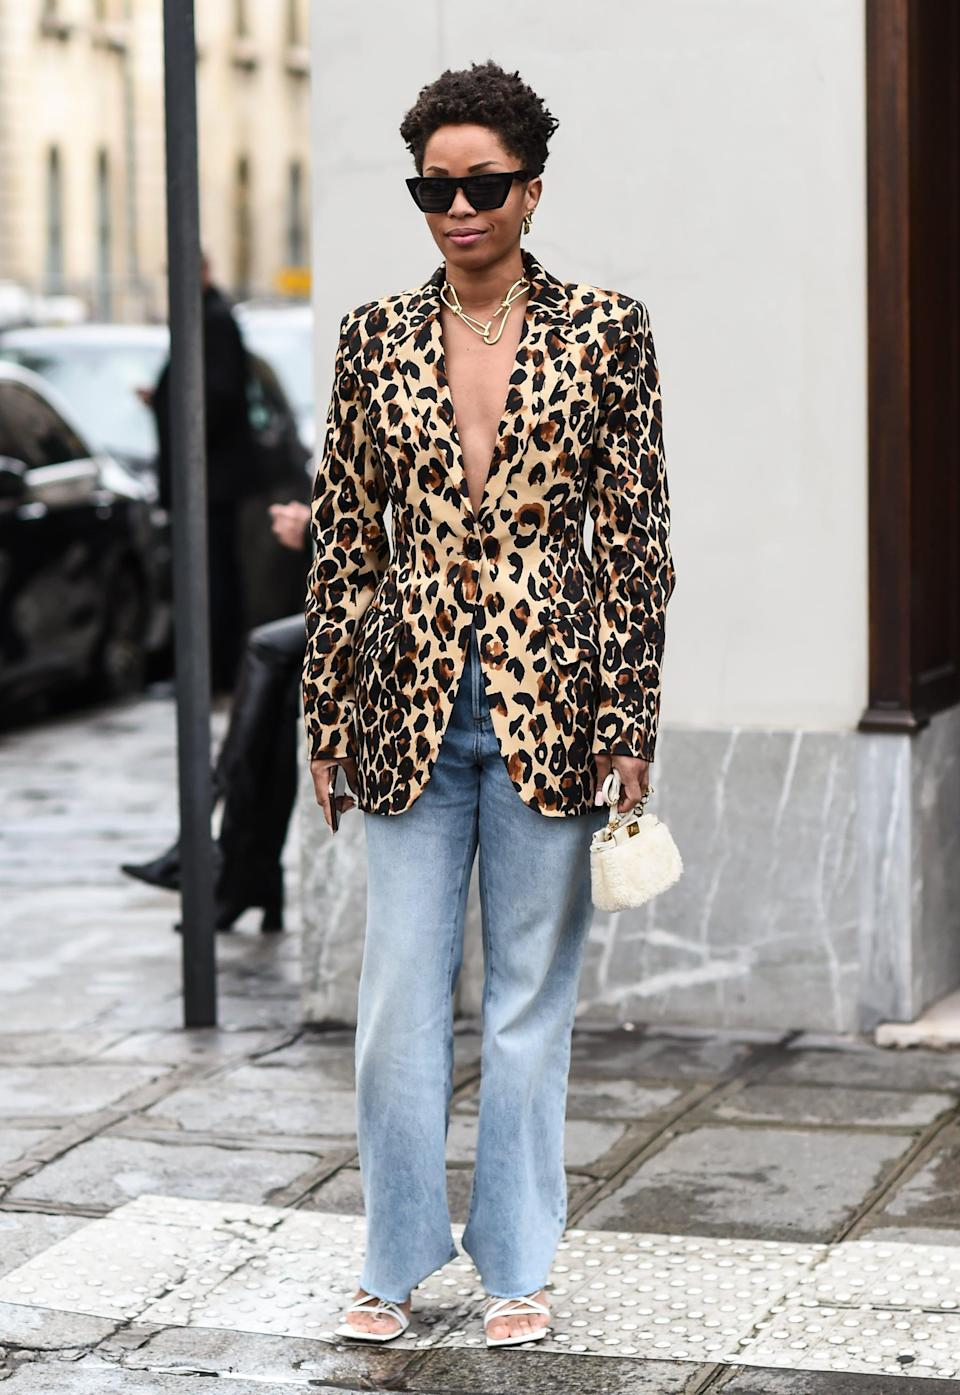 <p>For a sophisticated spin, we love the look of baggy jeans with heels and a blazer worn as a top. </p>